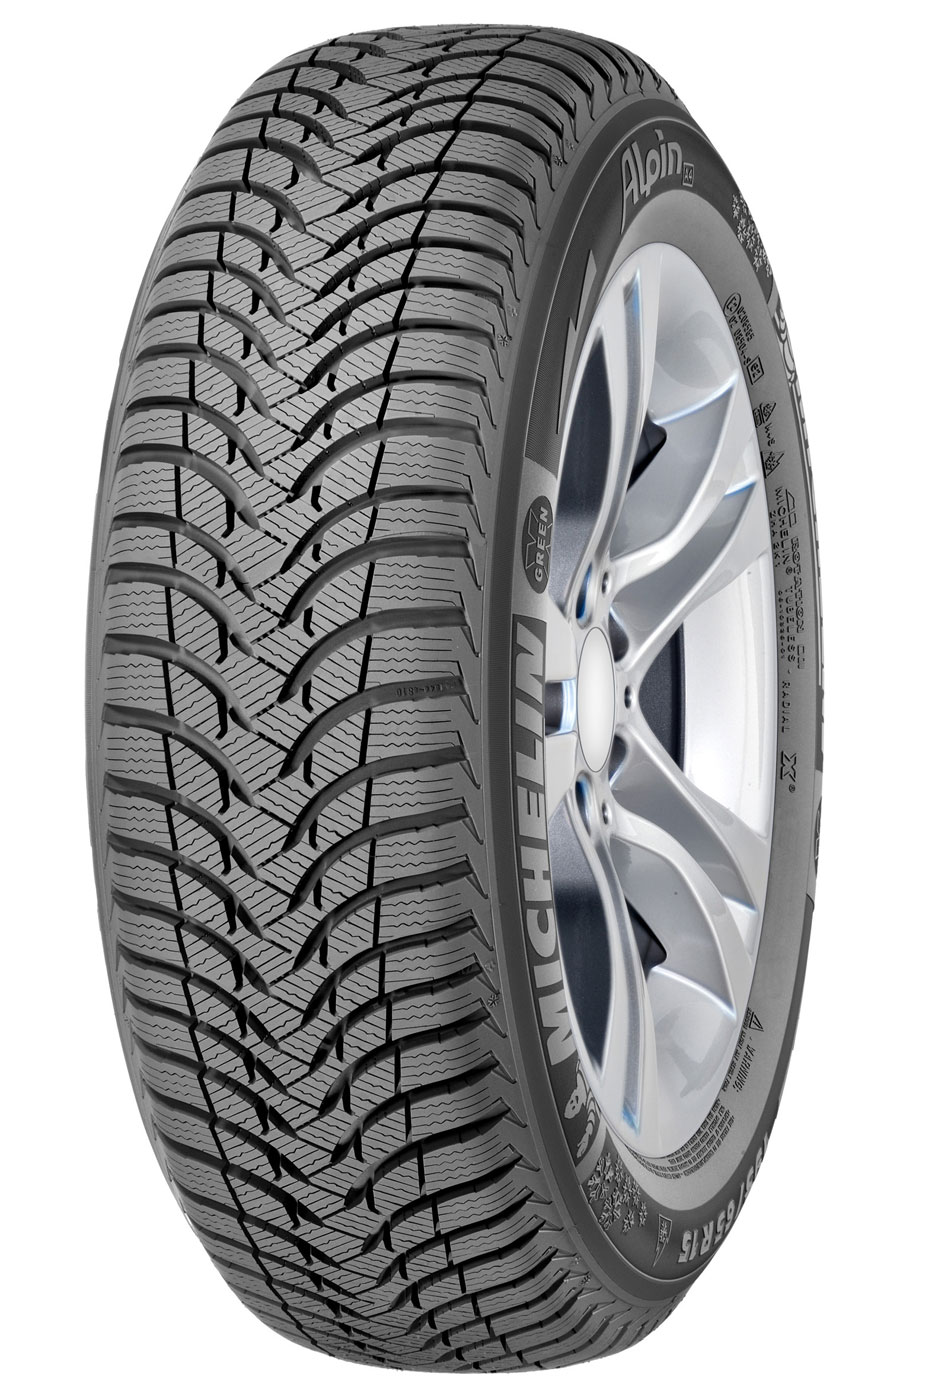 Michelin Alpin A4 225/45 R17 91H